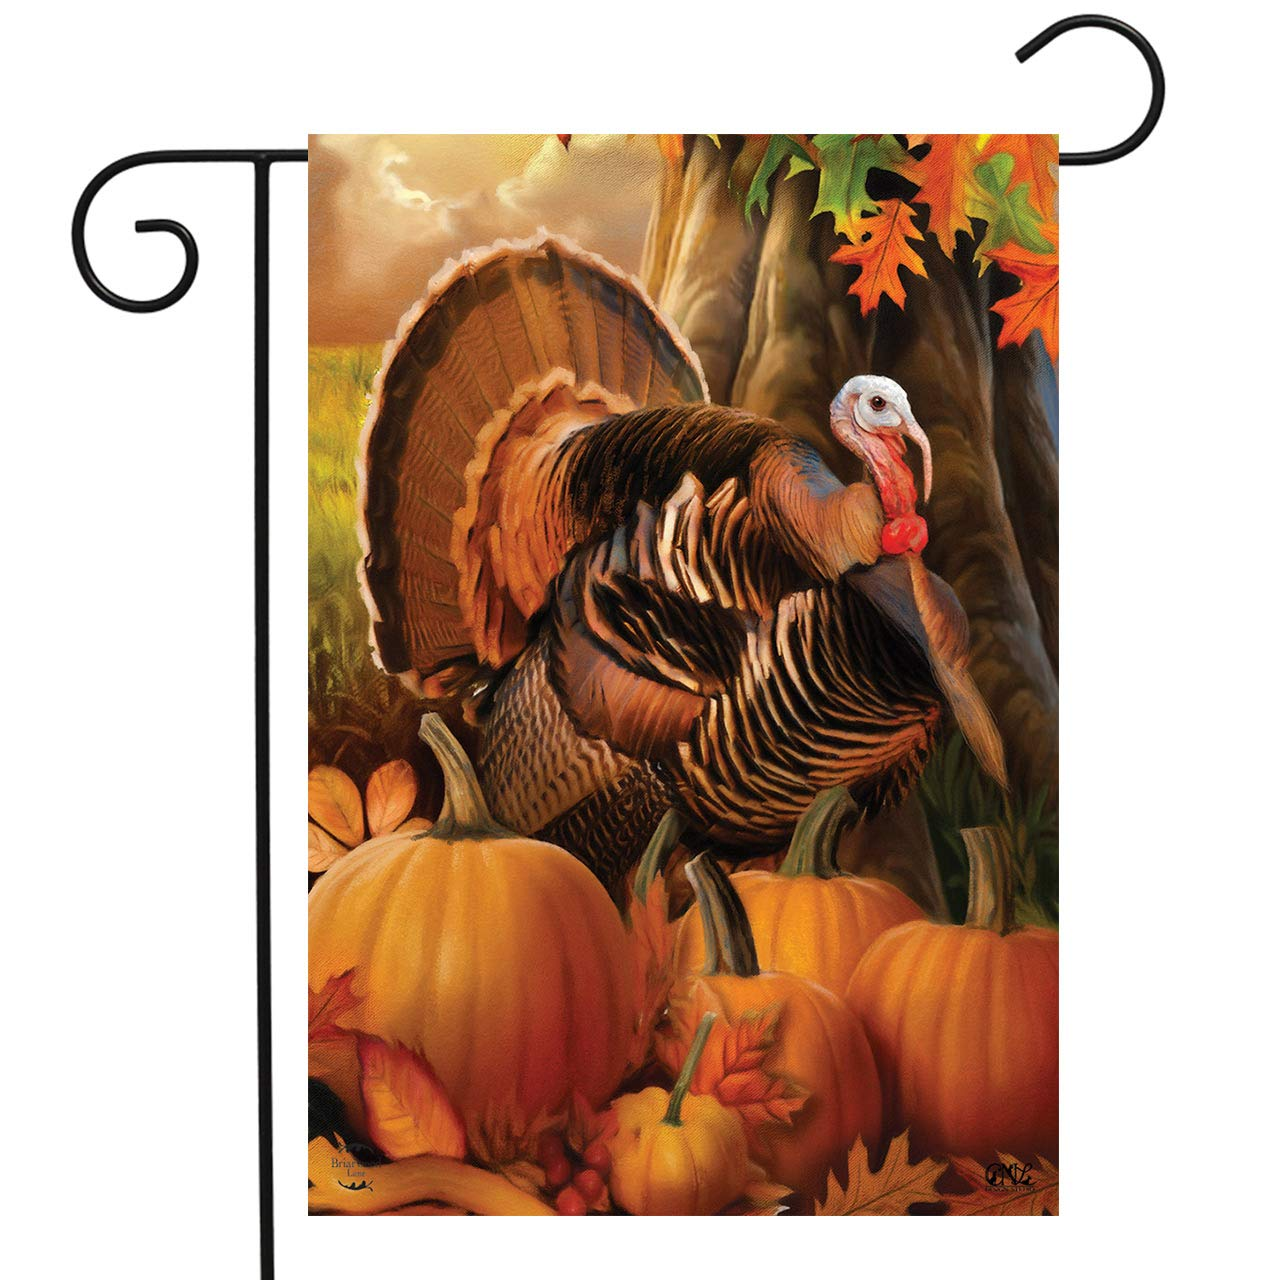 Harvest Turkey Garden Flag G00895 Country Yard Outlet